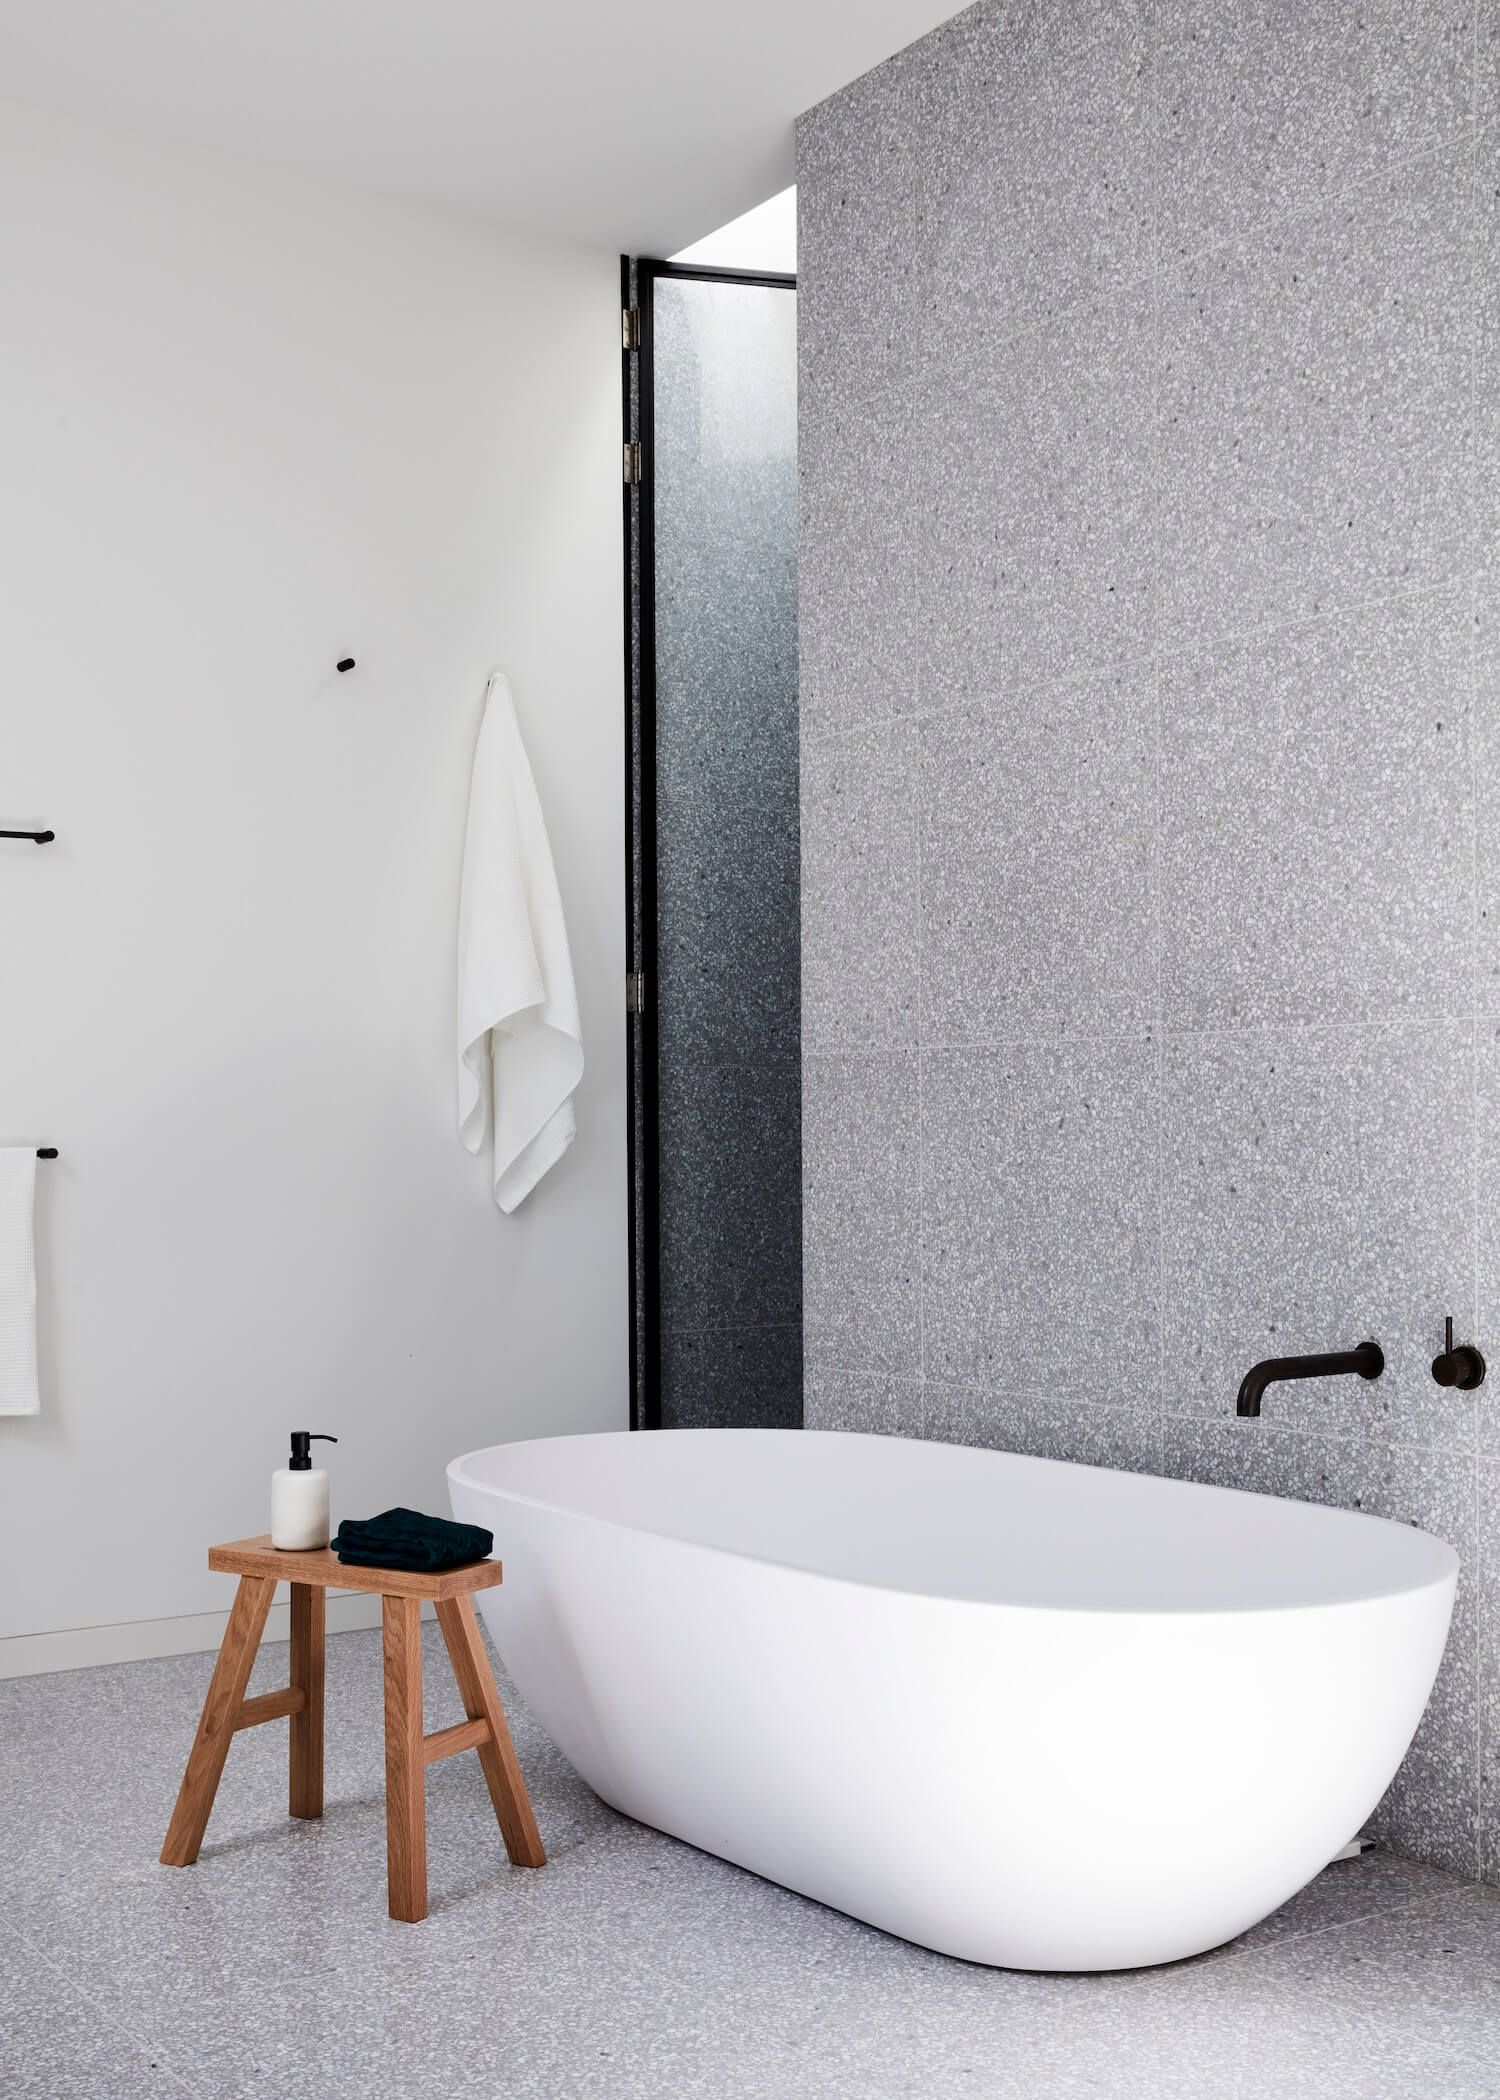 Photo of Armadale Home by Inglis Architects | Australian Interiors | est living